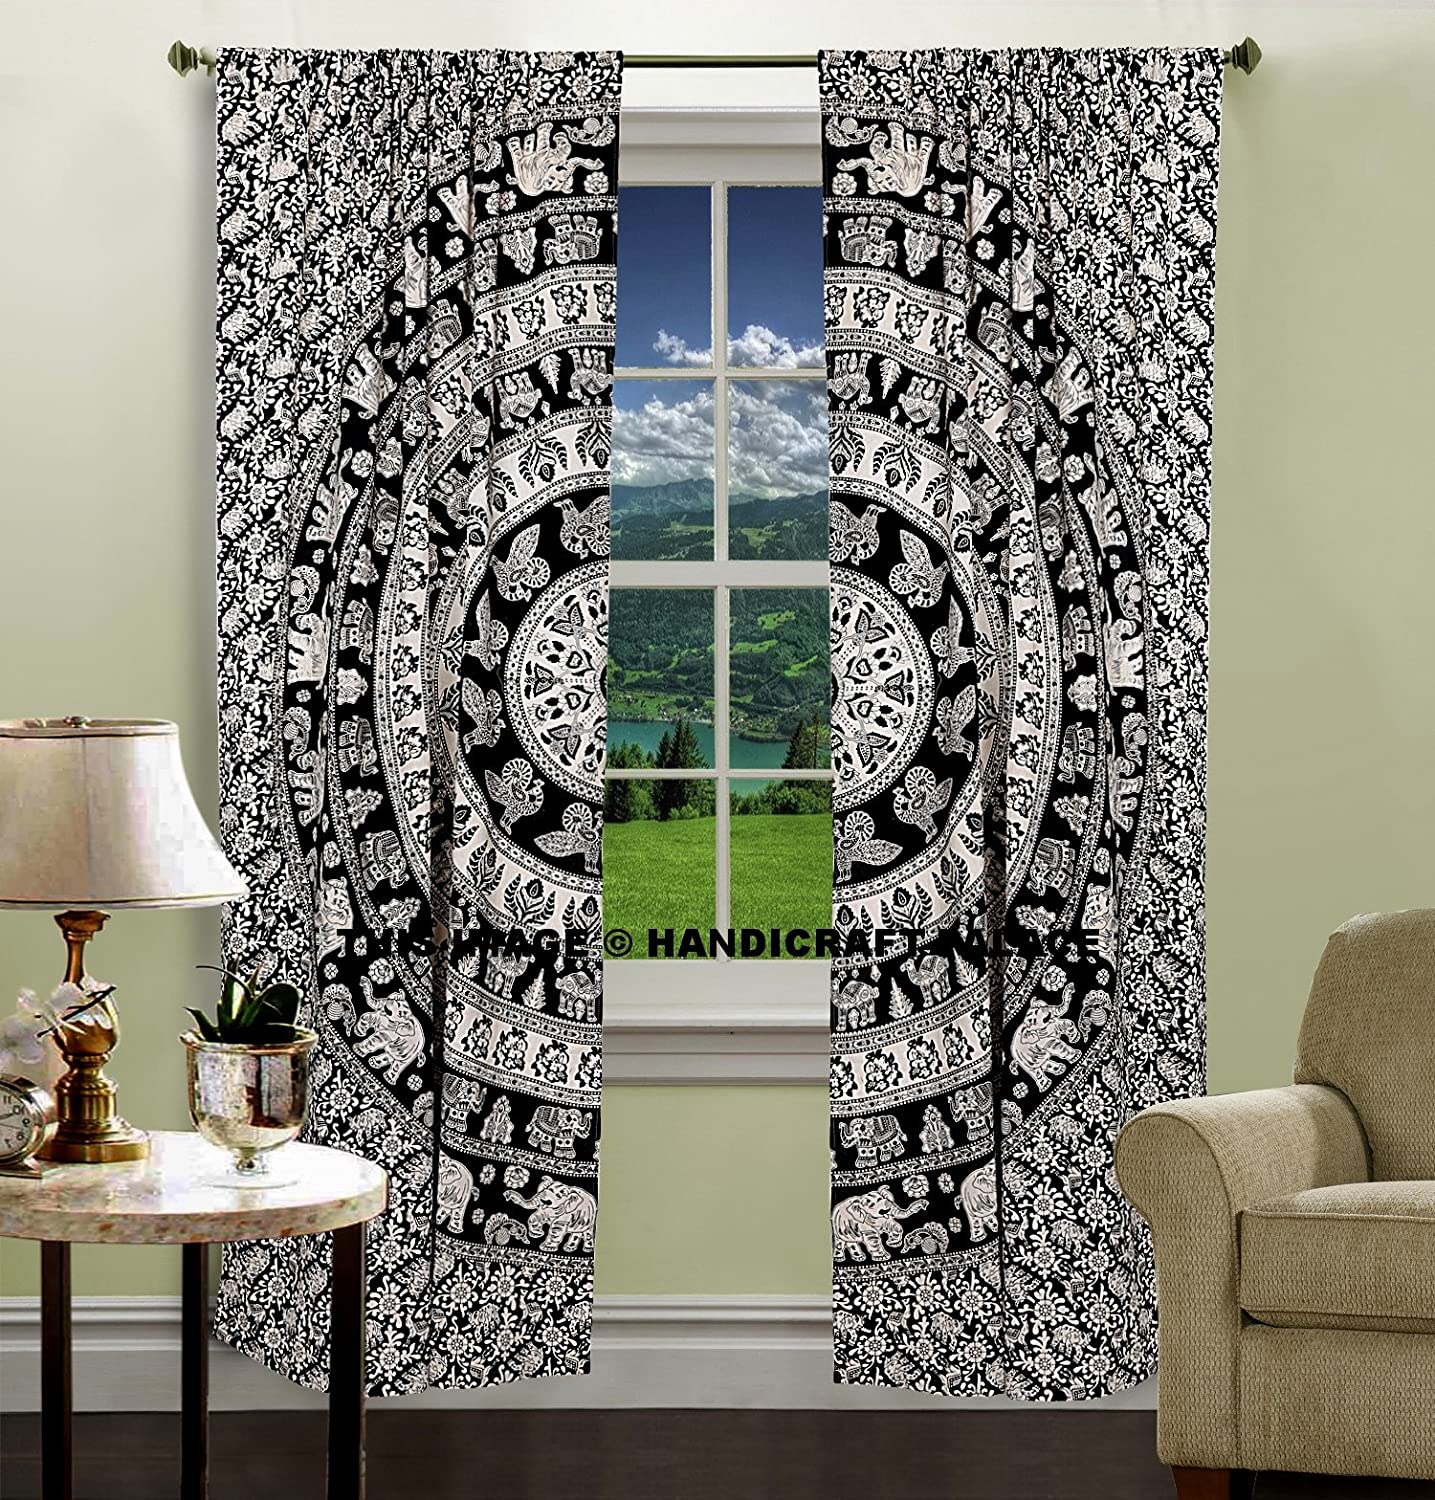 window boost size curtains and ideas inspiring treatment living of to various curtain pictures treatments concept full for room your triple astounding